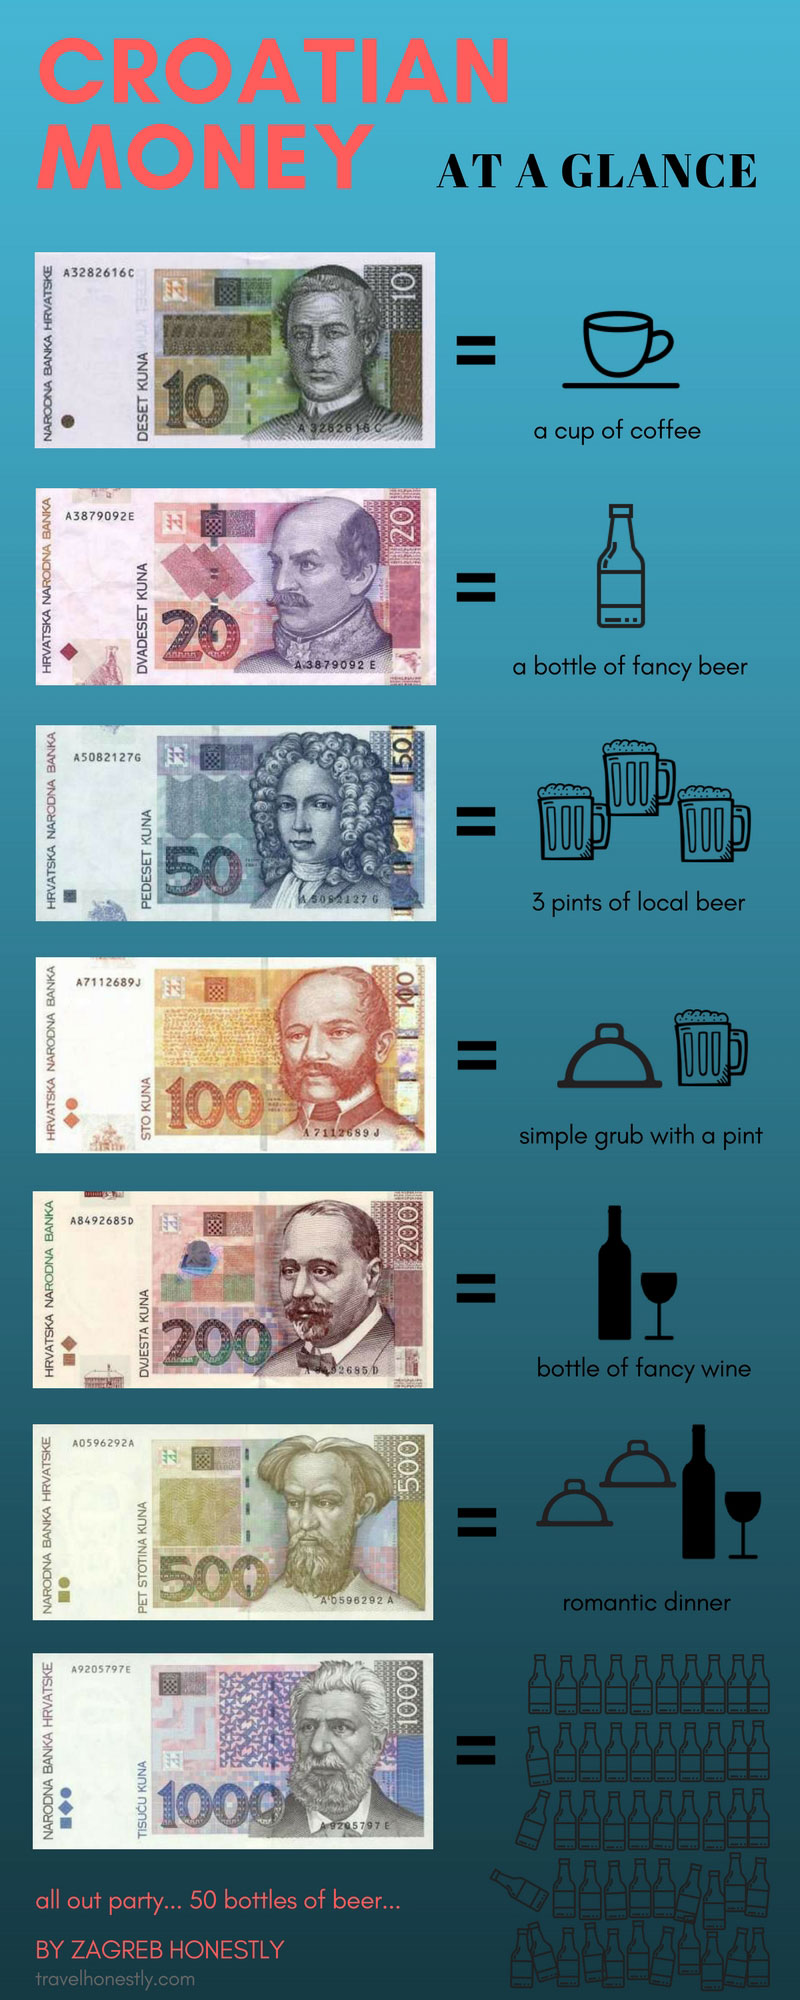 Croatian Currency Infographic Zagreb Honestly